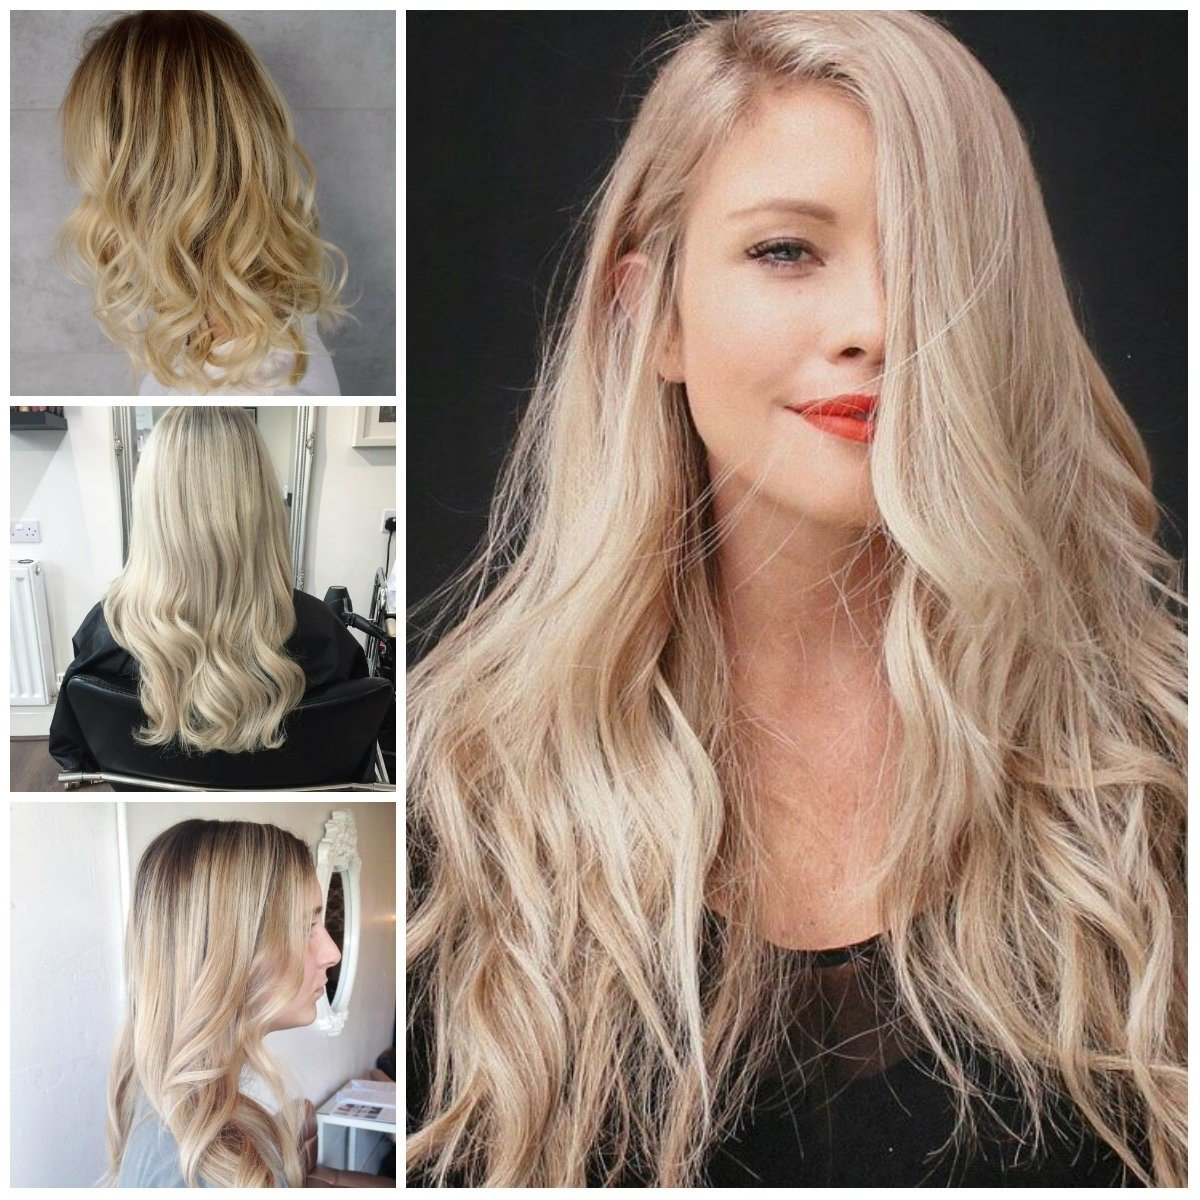 10 Unique Long Blonde Hair Color Ideas unique long blonde hair color razanflight